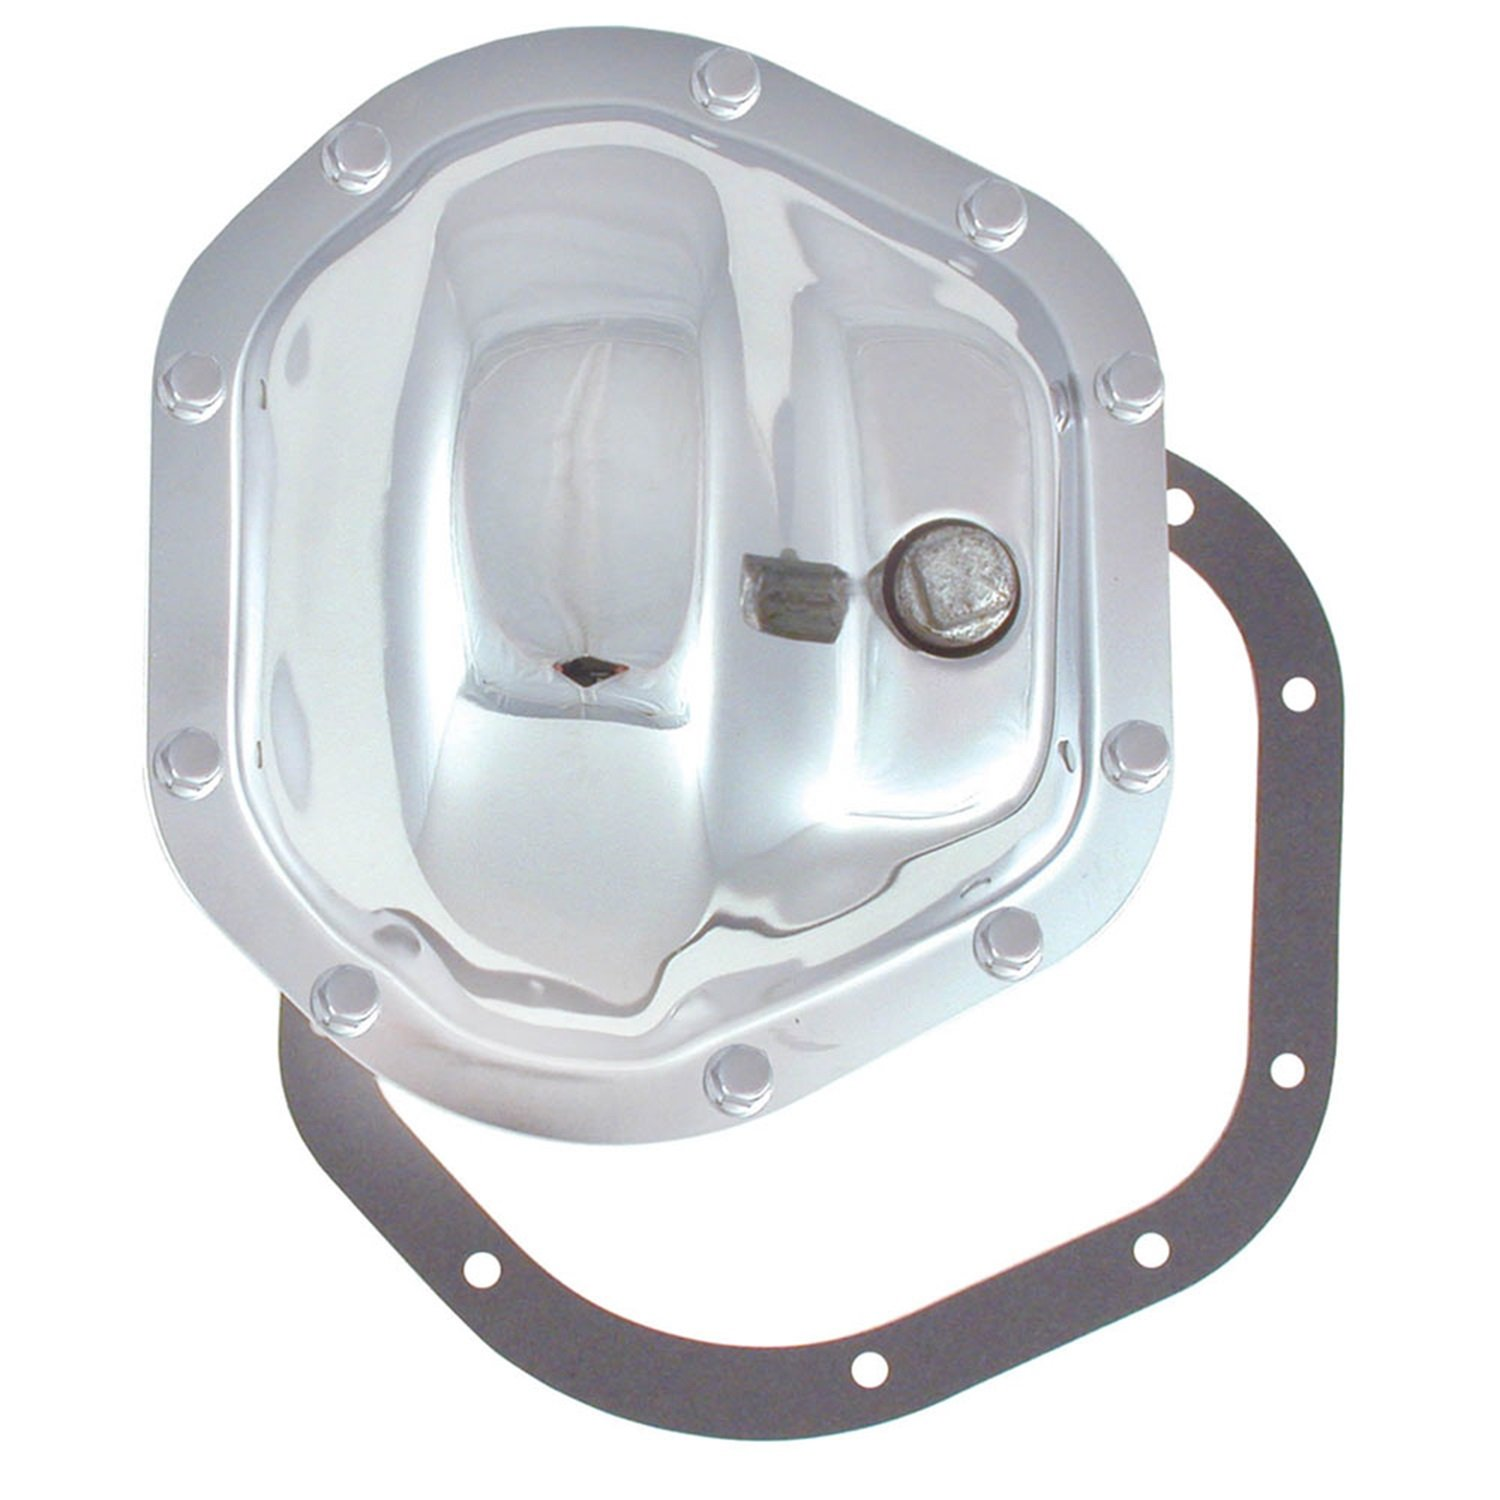 Spectre Performance 6075 Differential Cover for Dana 44 by Spectre Performance